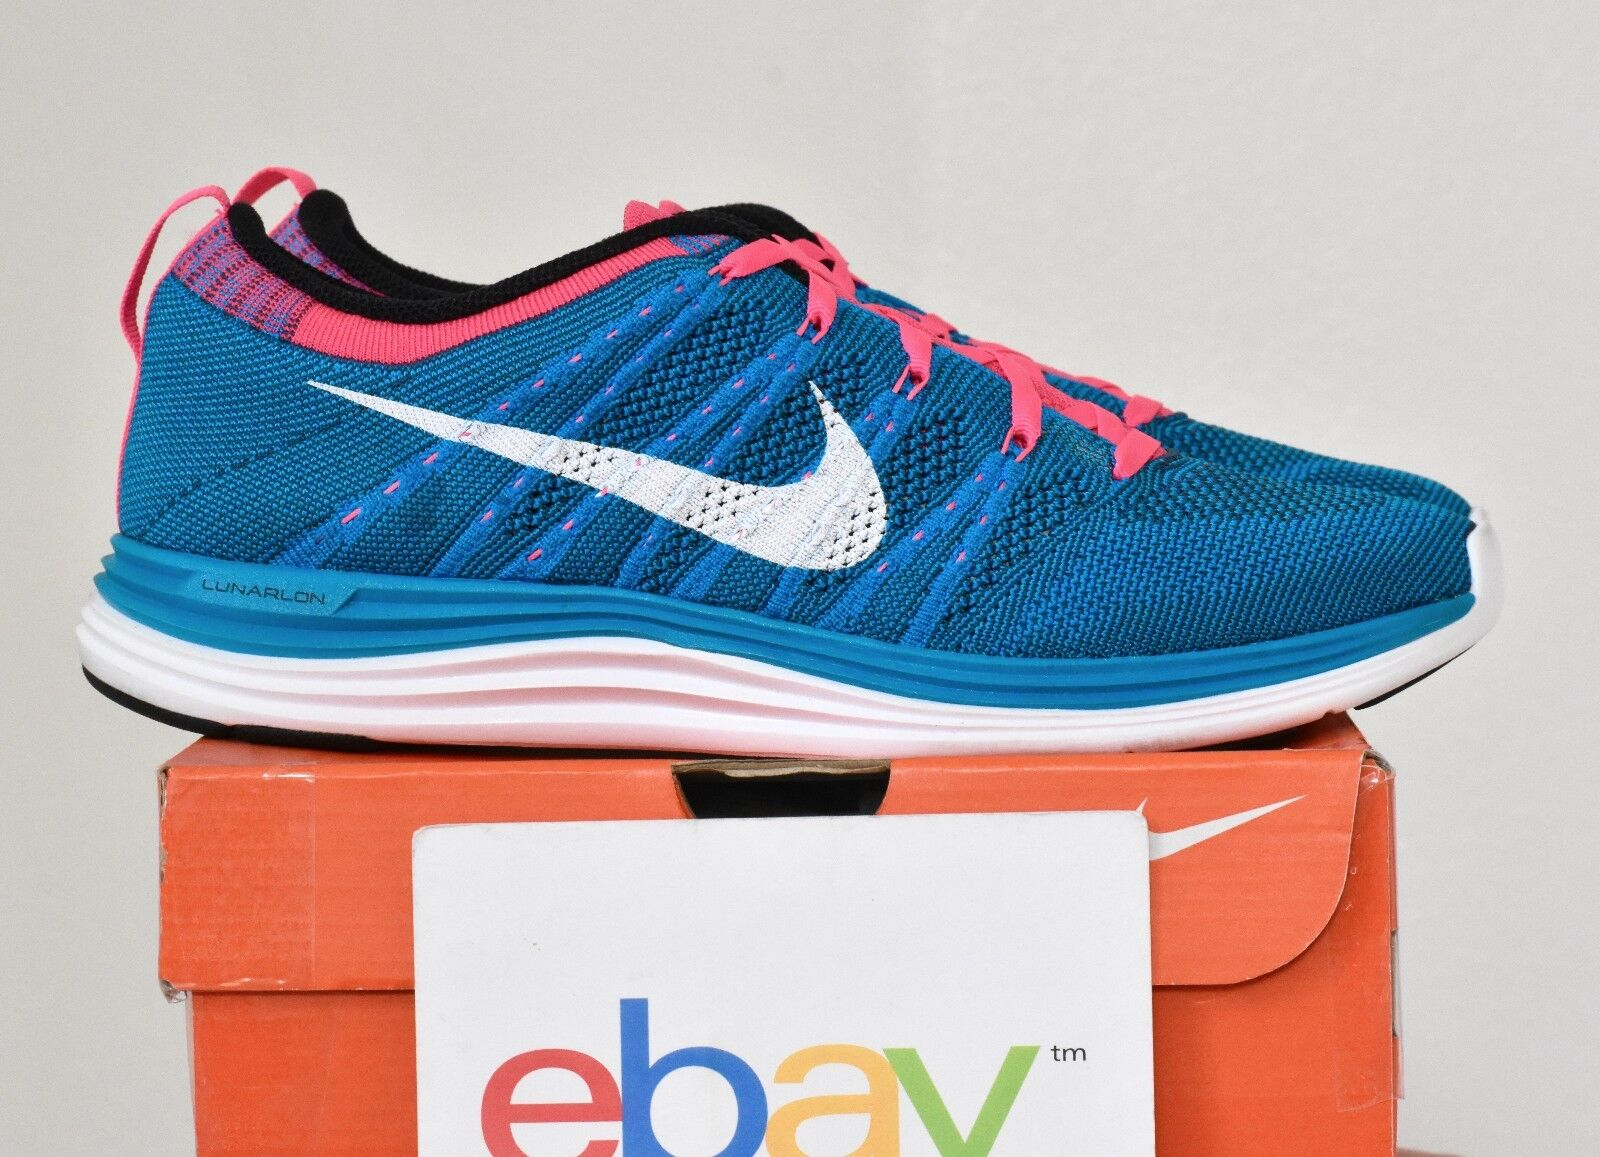 New Mens Nike Flyknit One+ Neo Turquoise Blue Sizes 9-14 pink 1 free 554887 414